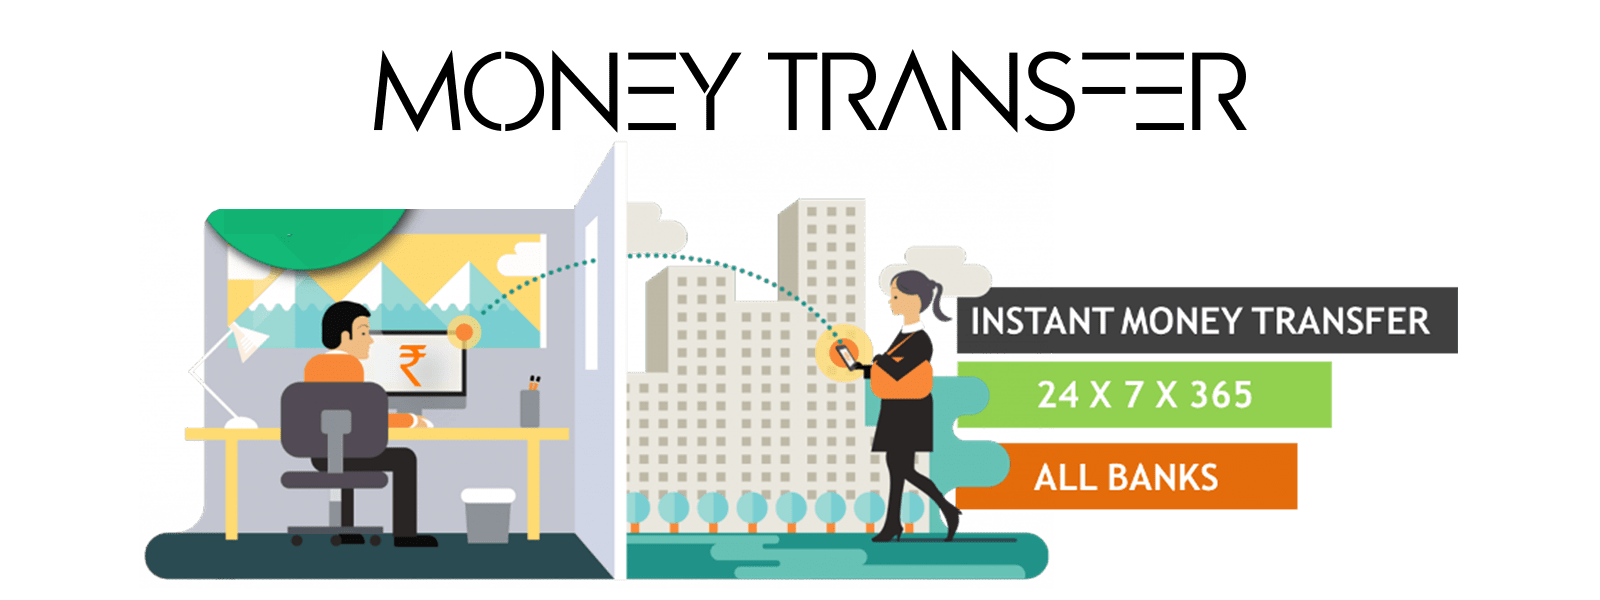 Transfer Money To Any Bank Account Anywhere In India At Time